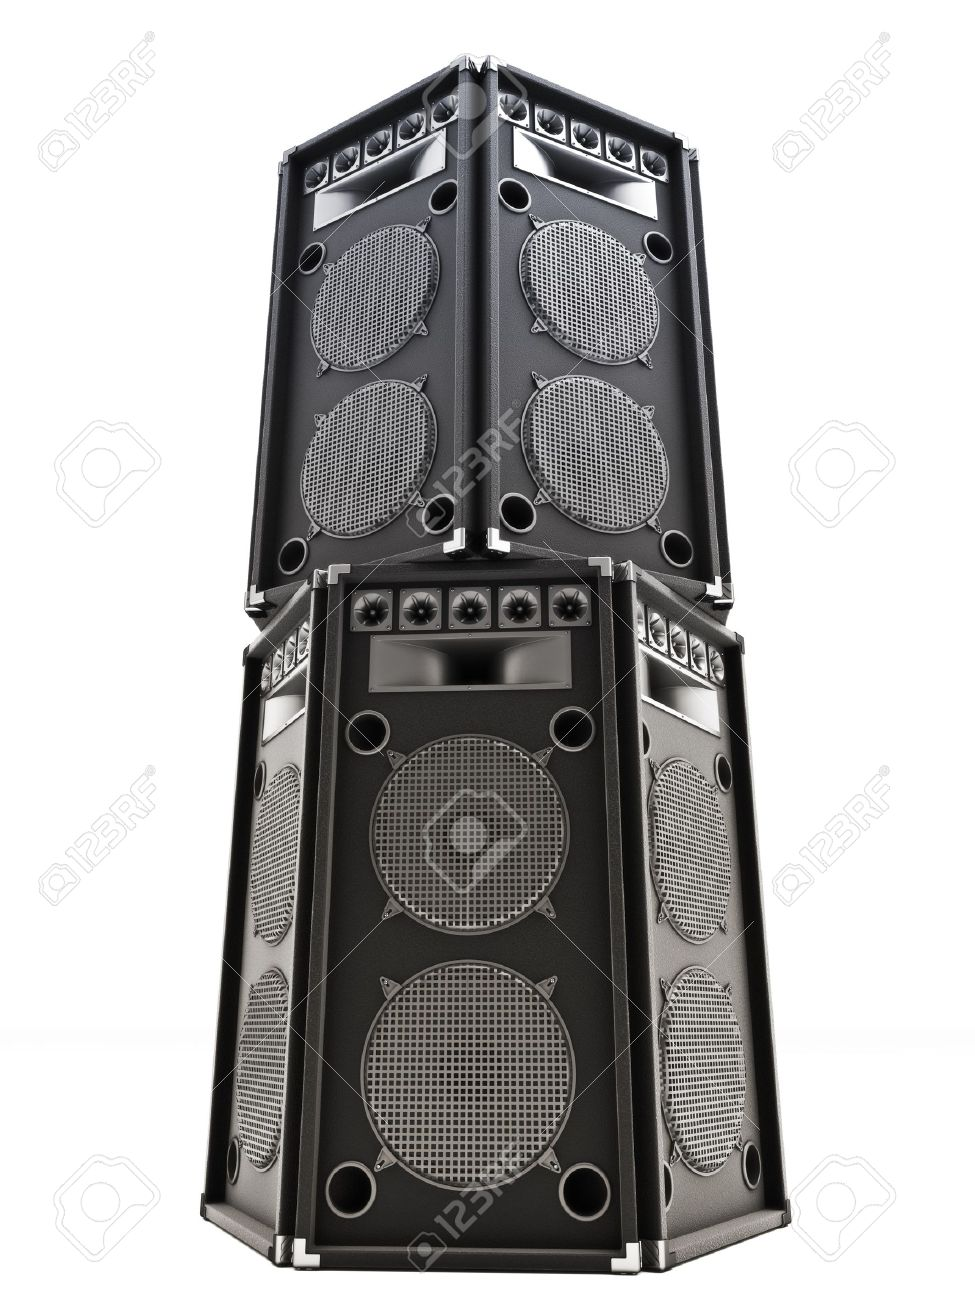 Large Audio Tower Speakers On A White Background Stock Photo Picture And Royalty Free Image Image 17195663